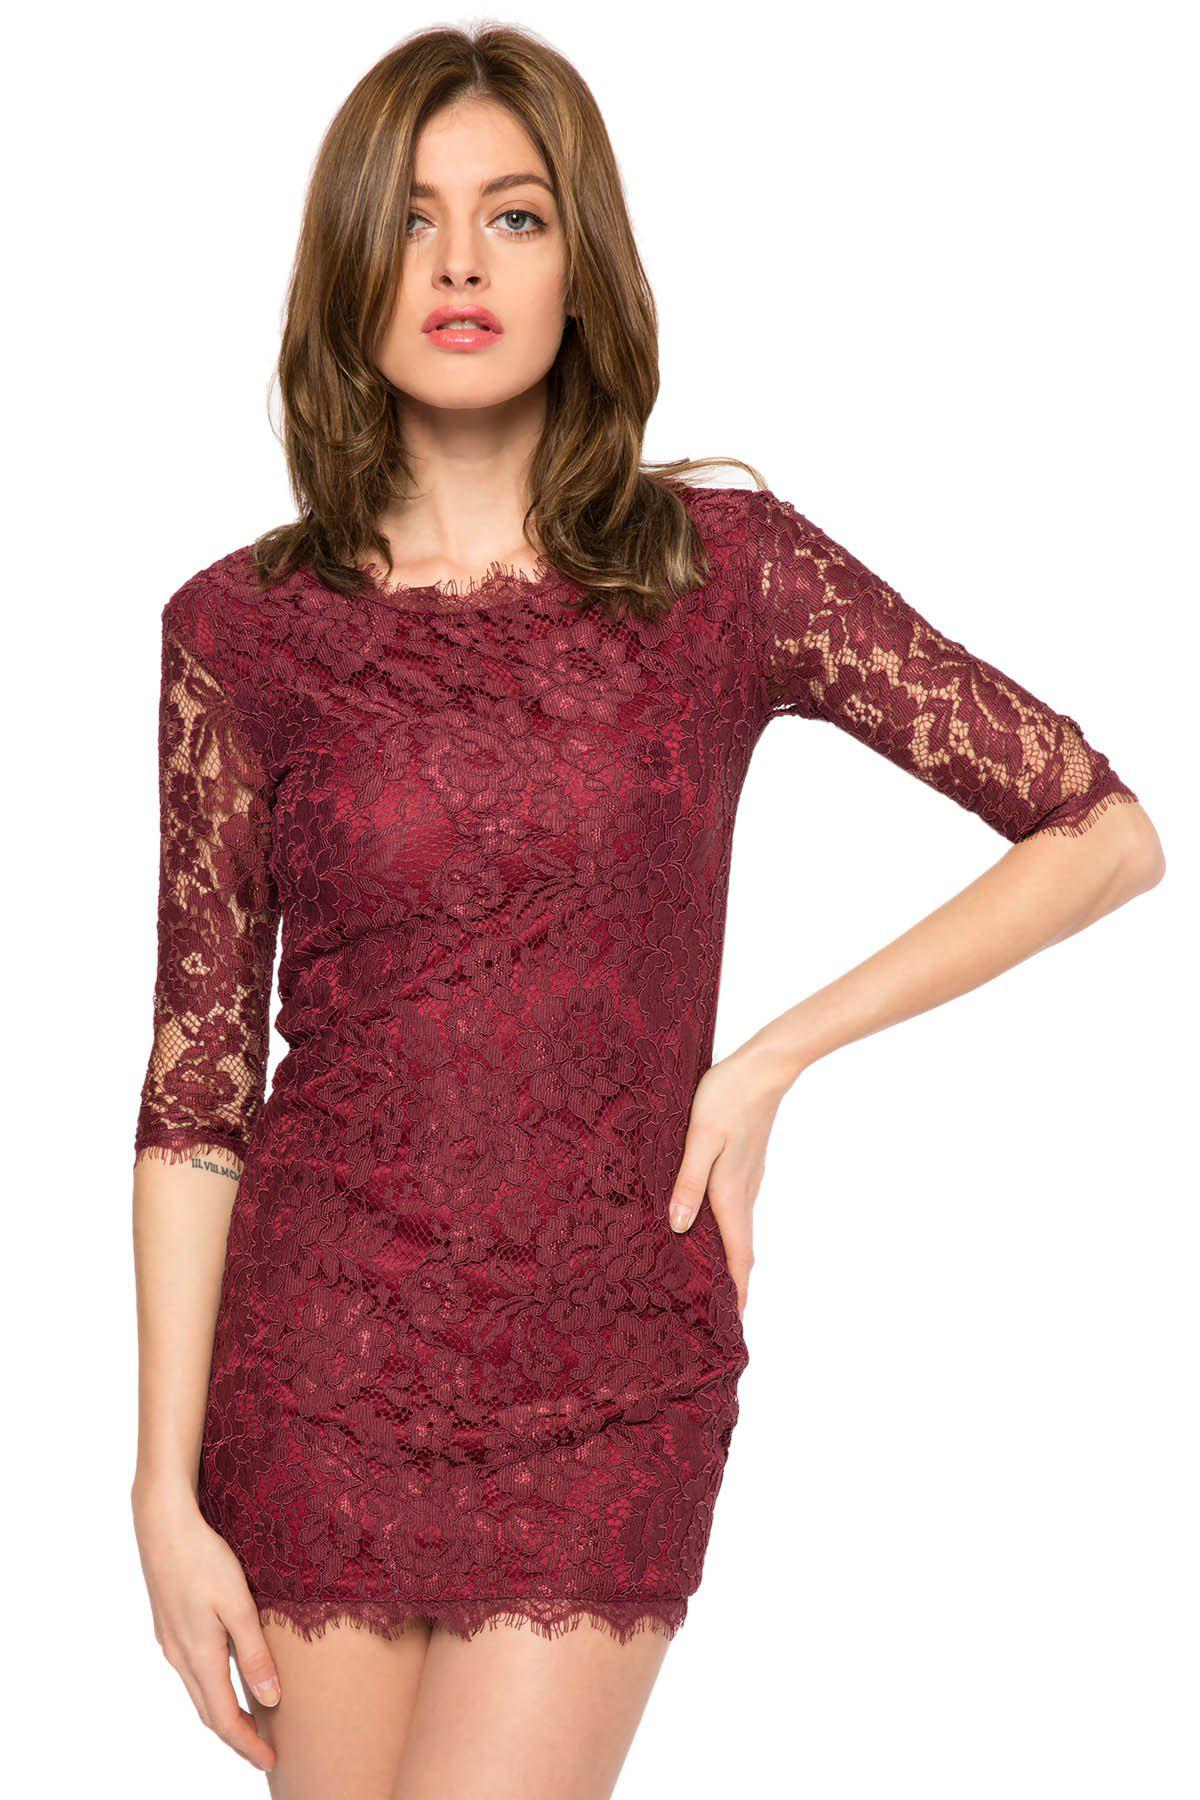 Trendy Style Scoop Collar 3/4 Sleeve Solid Color Slimming Women's Lace Dress - DEEP PURPLE 2XL